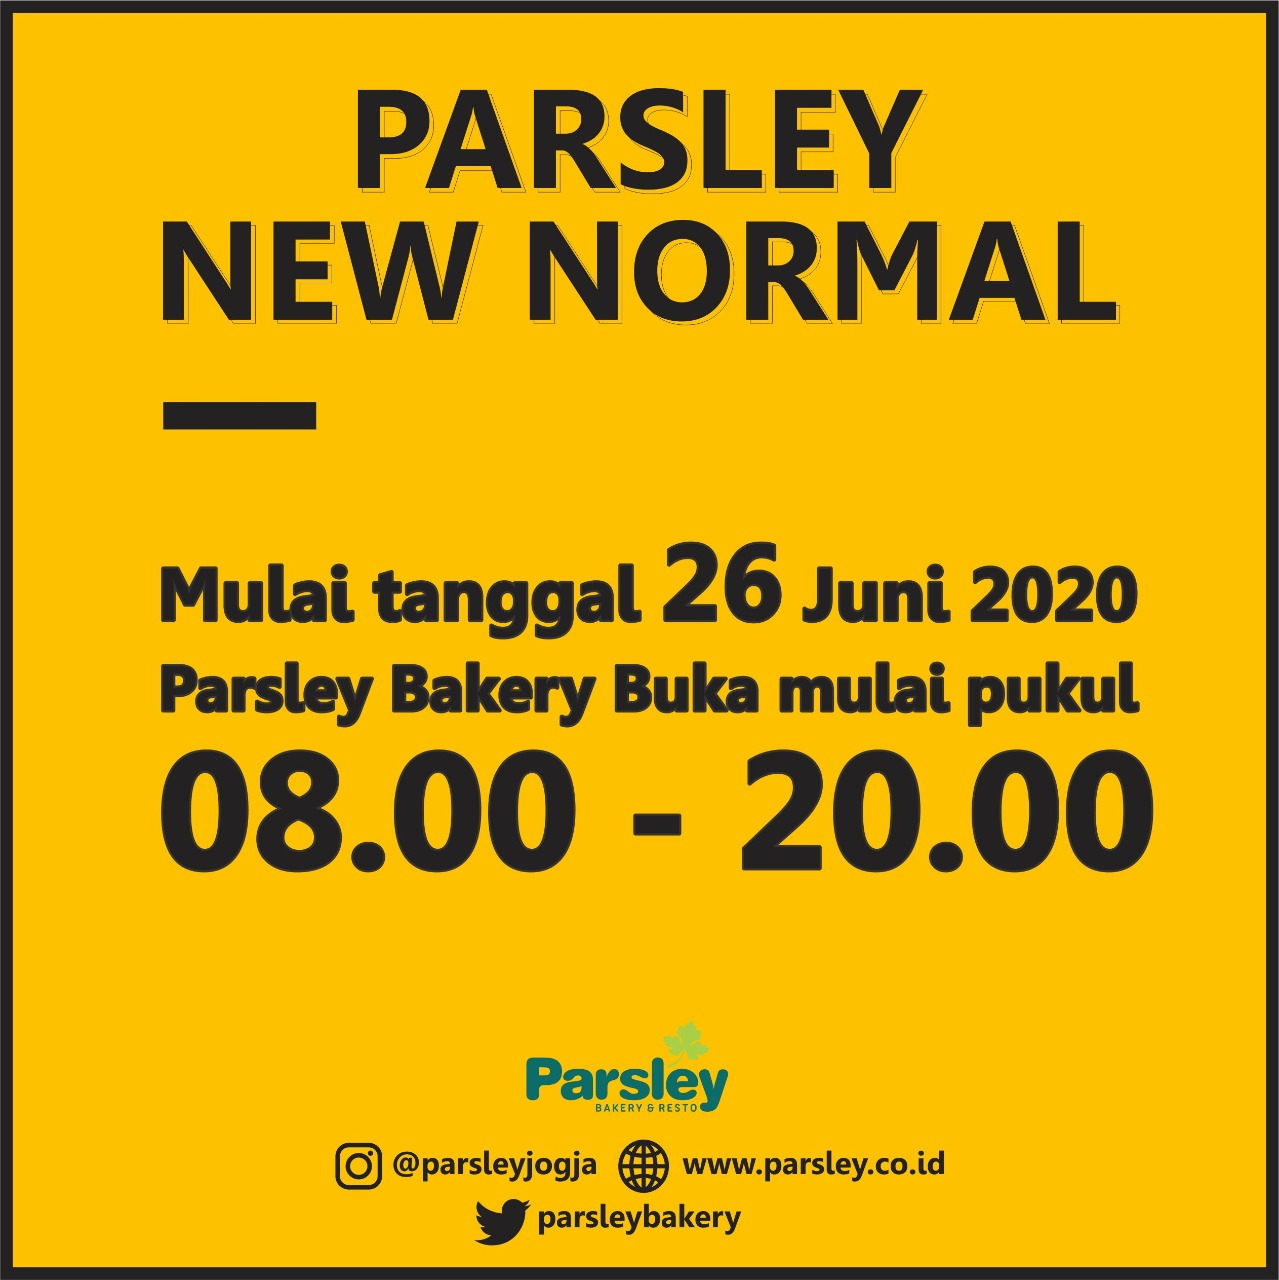 Operasional Parsley New Normal